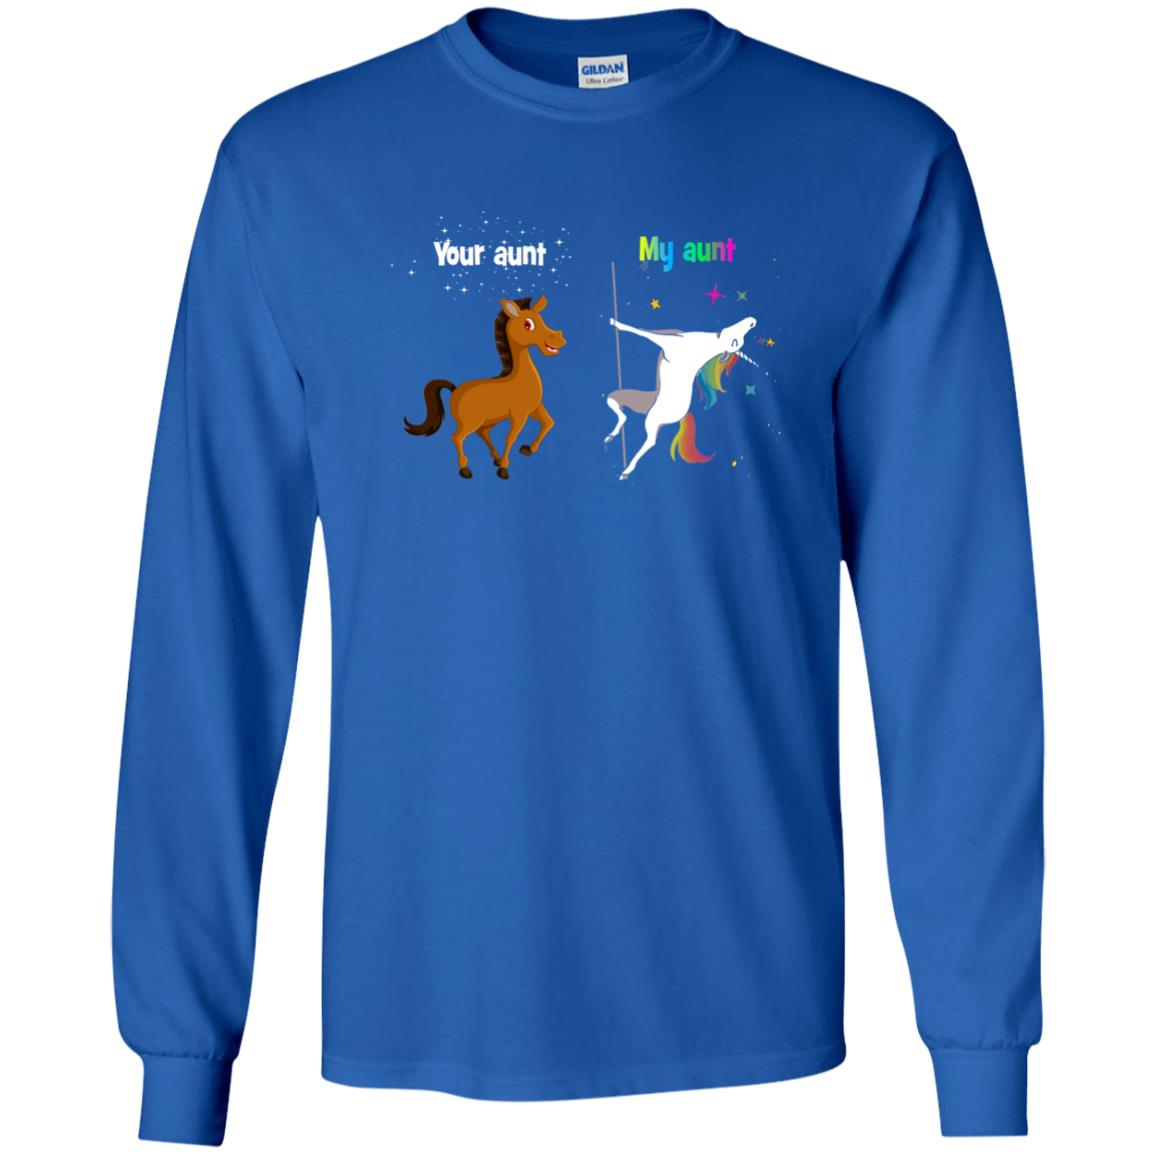 image 949px My aunt unicorn vs your aunt horse youth t shirt